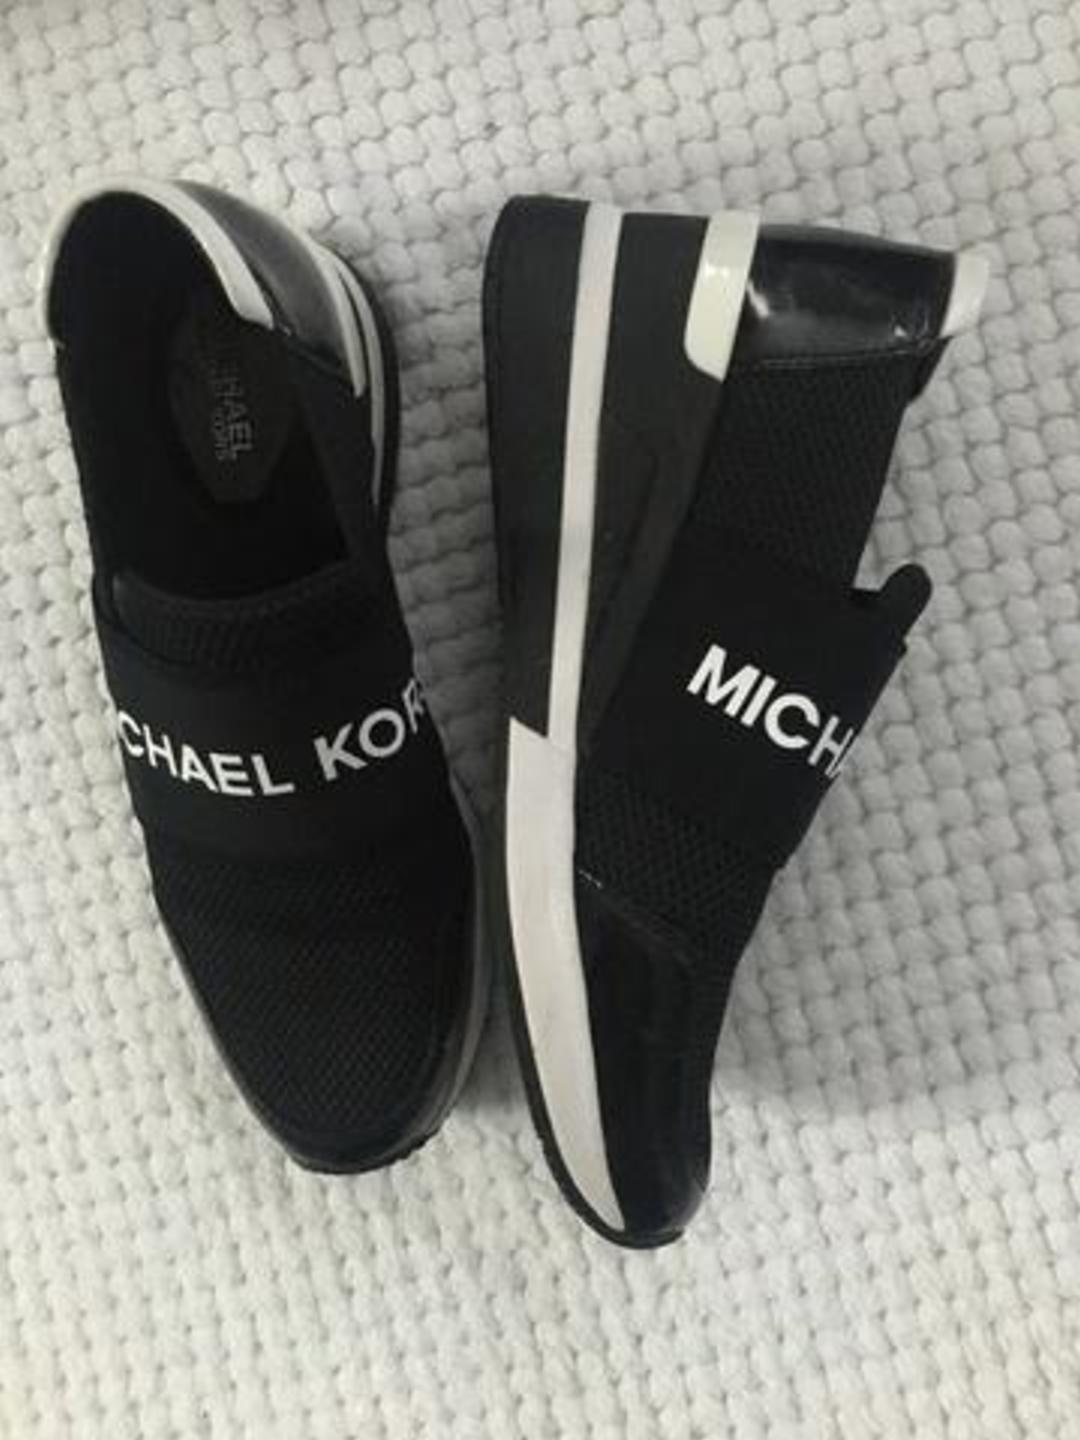 Women's sneakers - MICHAEL KORS photo 1